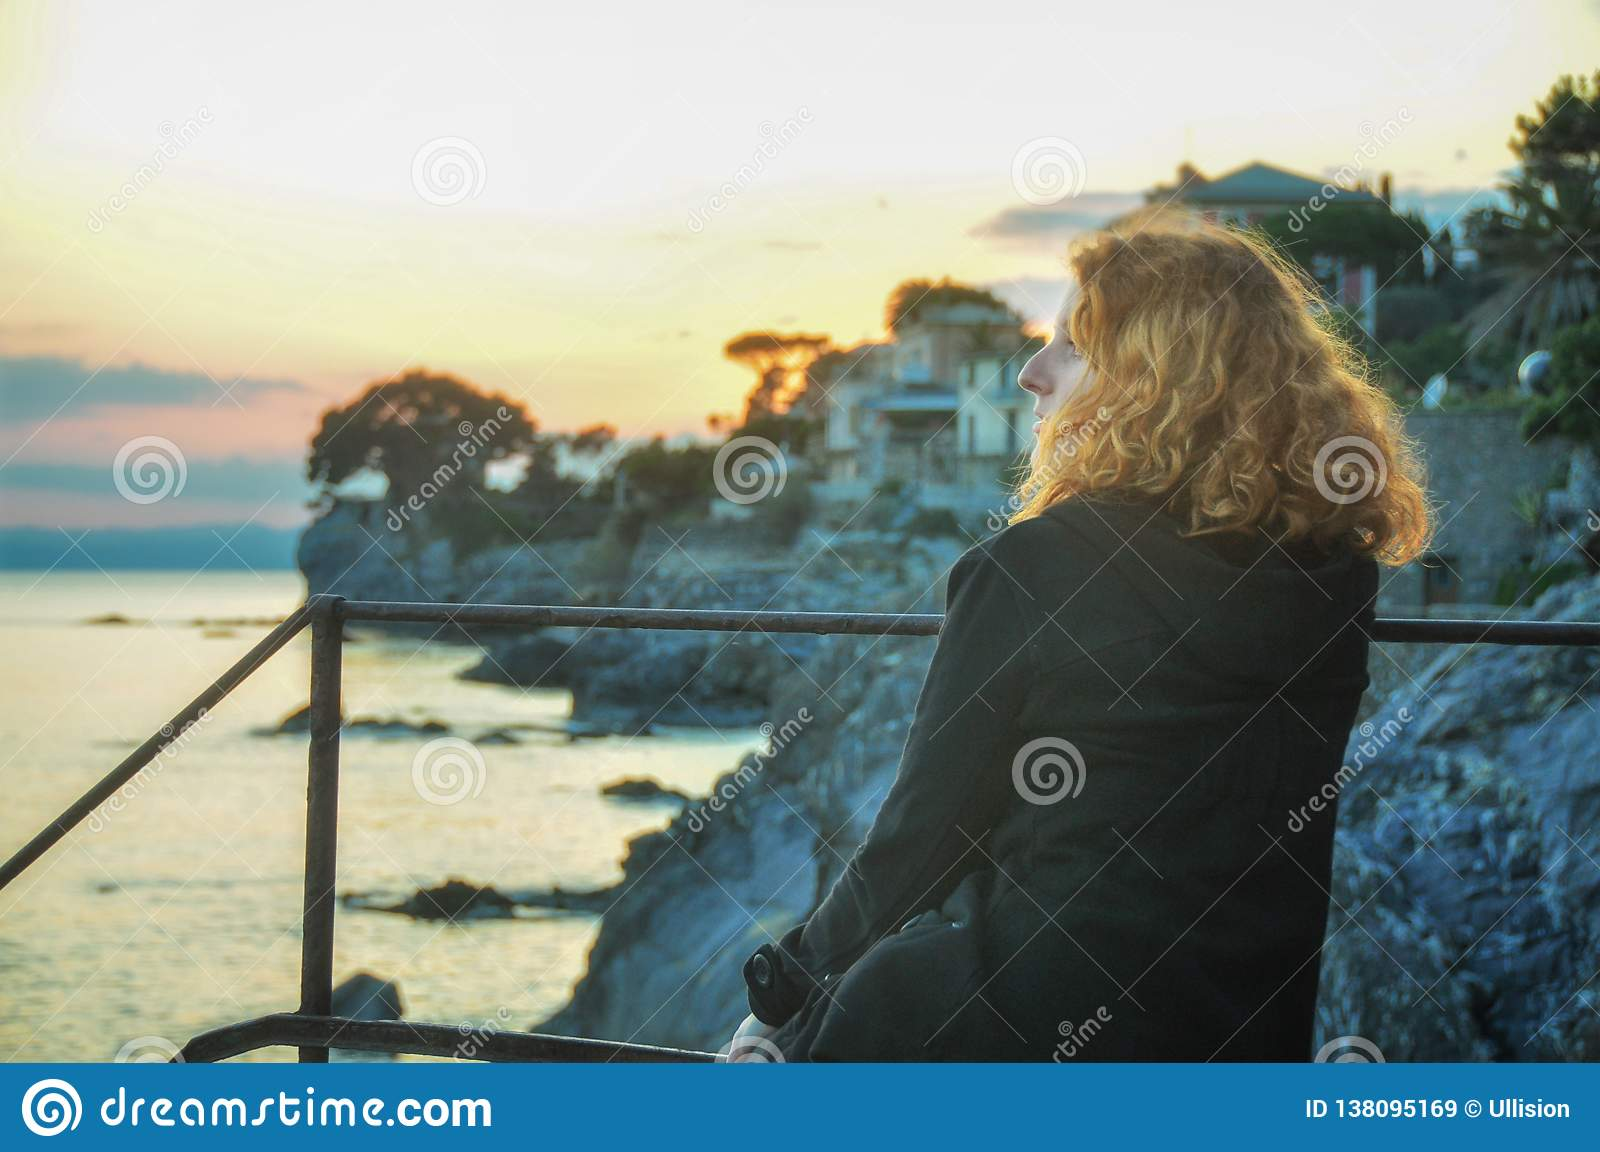 Beautiful young red-haired woman, at the seaside in the fishing village in Liguria, Italy enjoys the sunset